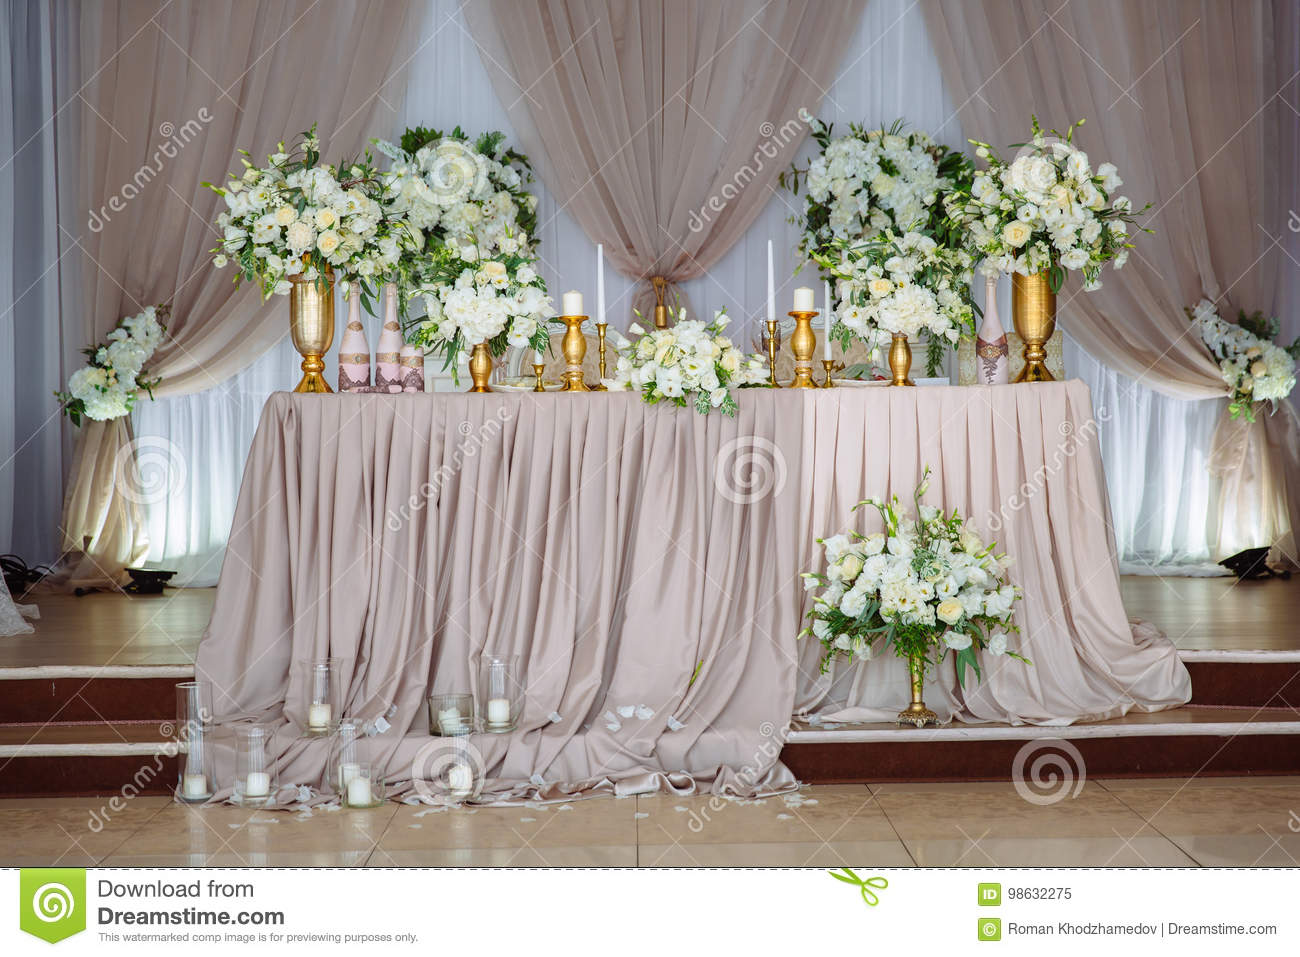 Decoration De Restaurant Beautiful Decorated Wedding Restaurant For Marriage Colorful